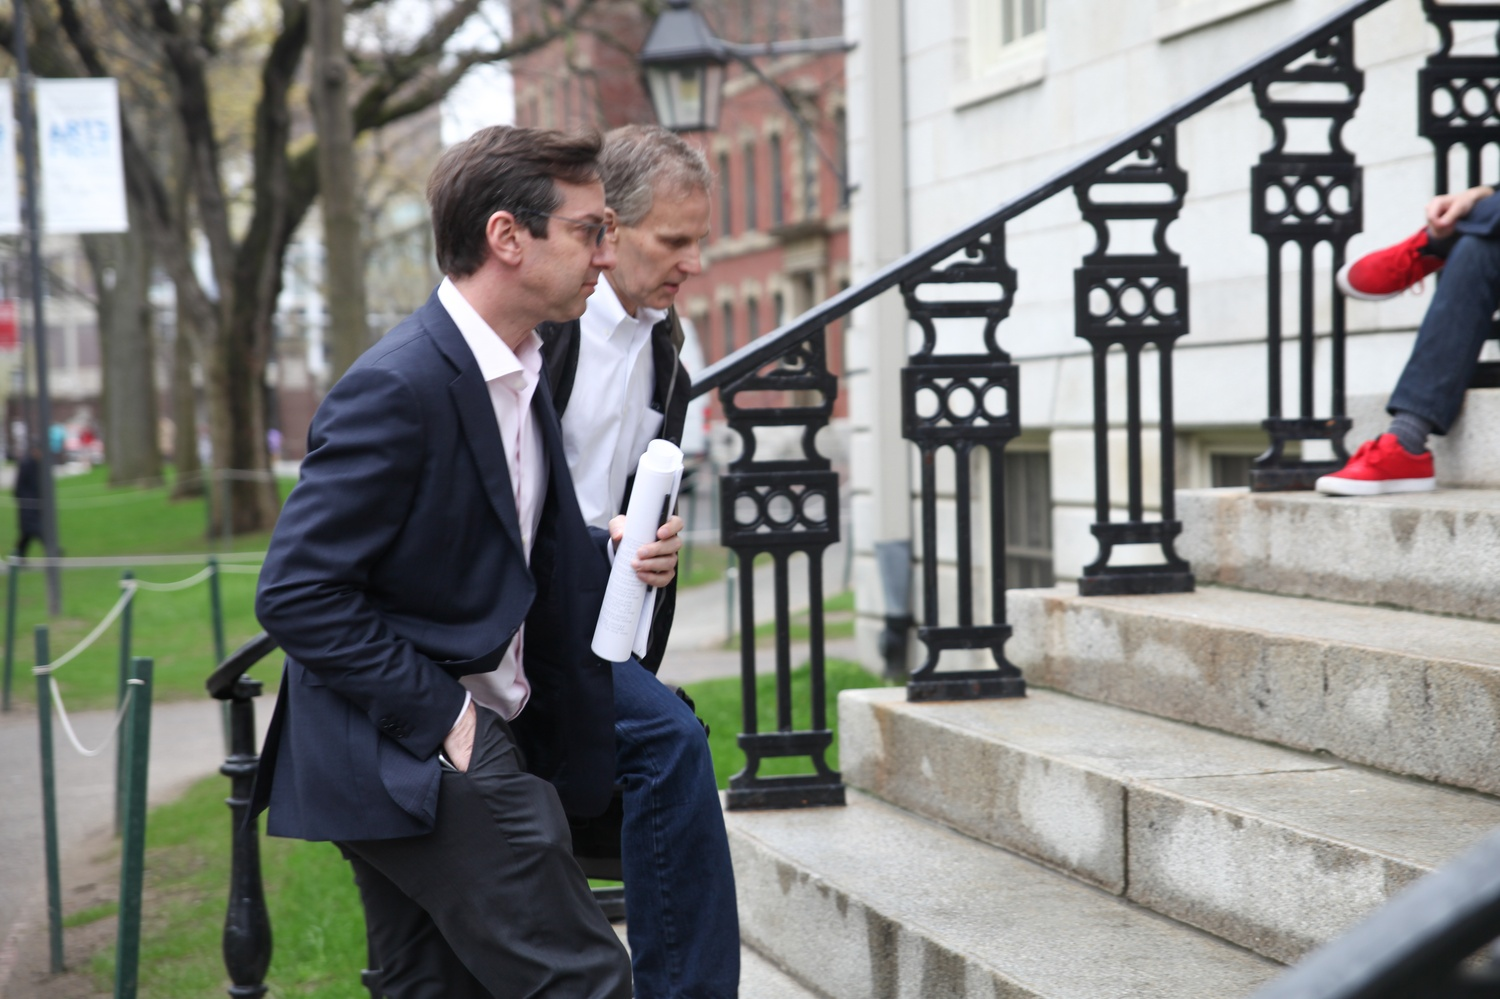 David I. Laibson '88, chair of the Economics Department, and Jeffrey A. Myron, the department's director of undergraduate studies, head into University Hall on Tuesday afternoon for a Faculty meeting.